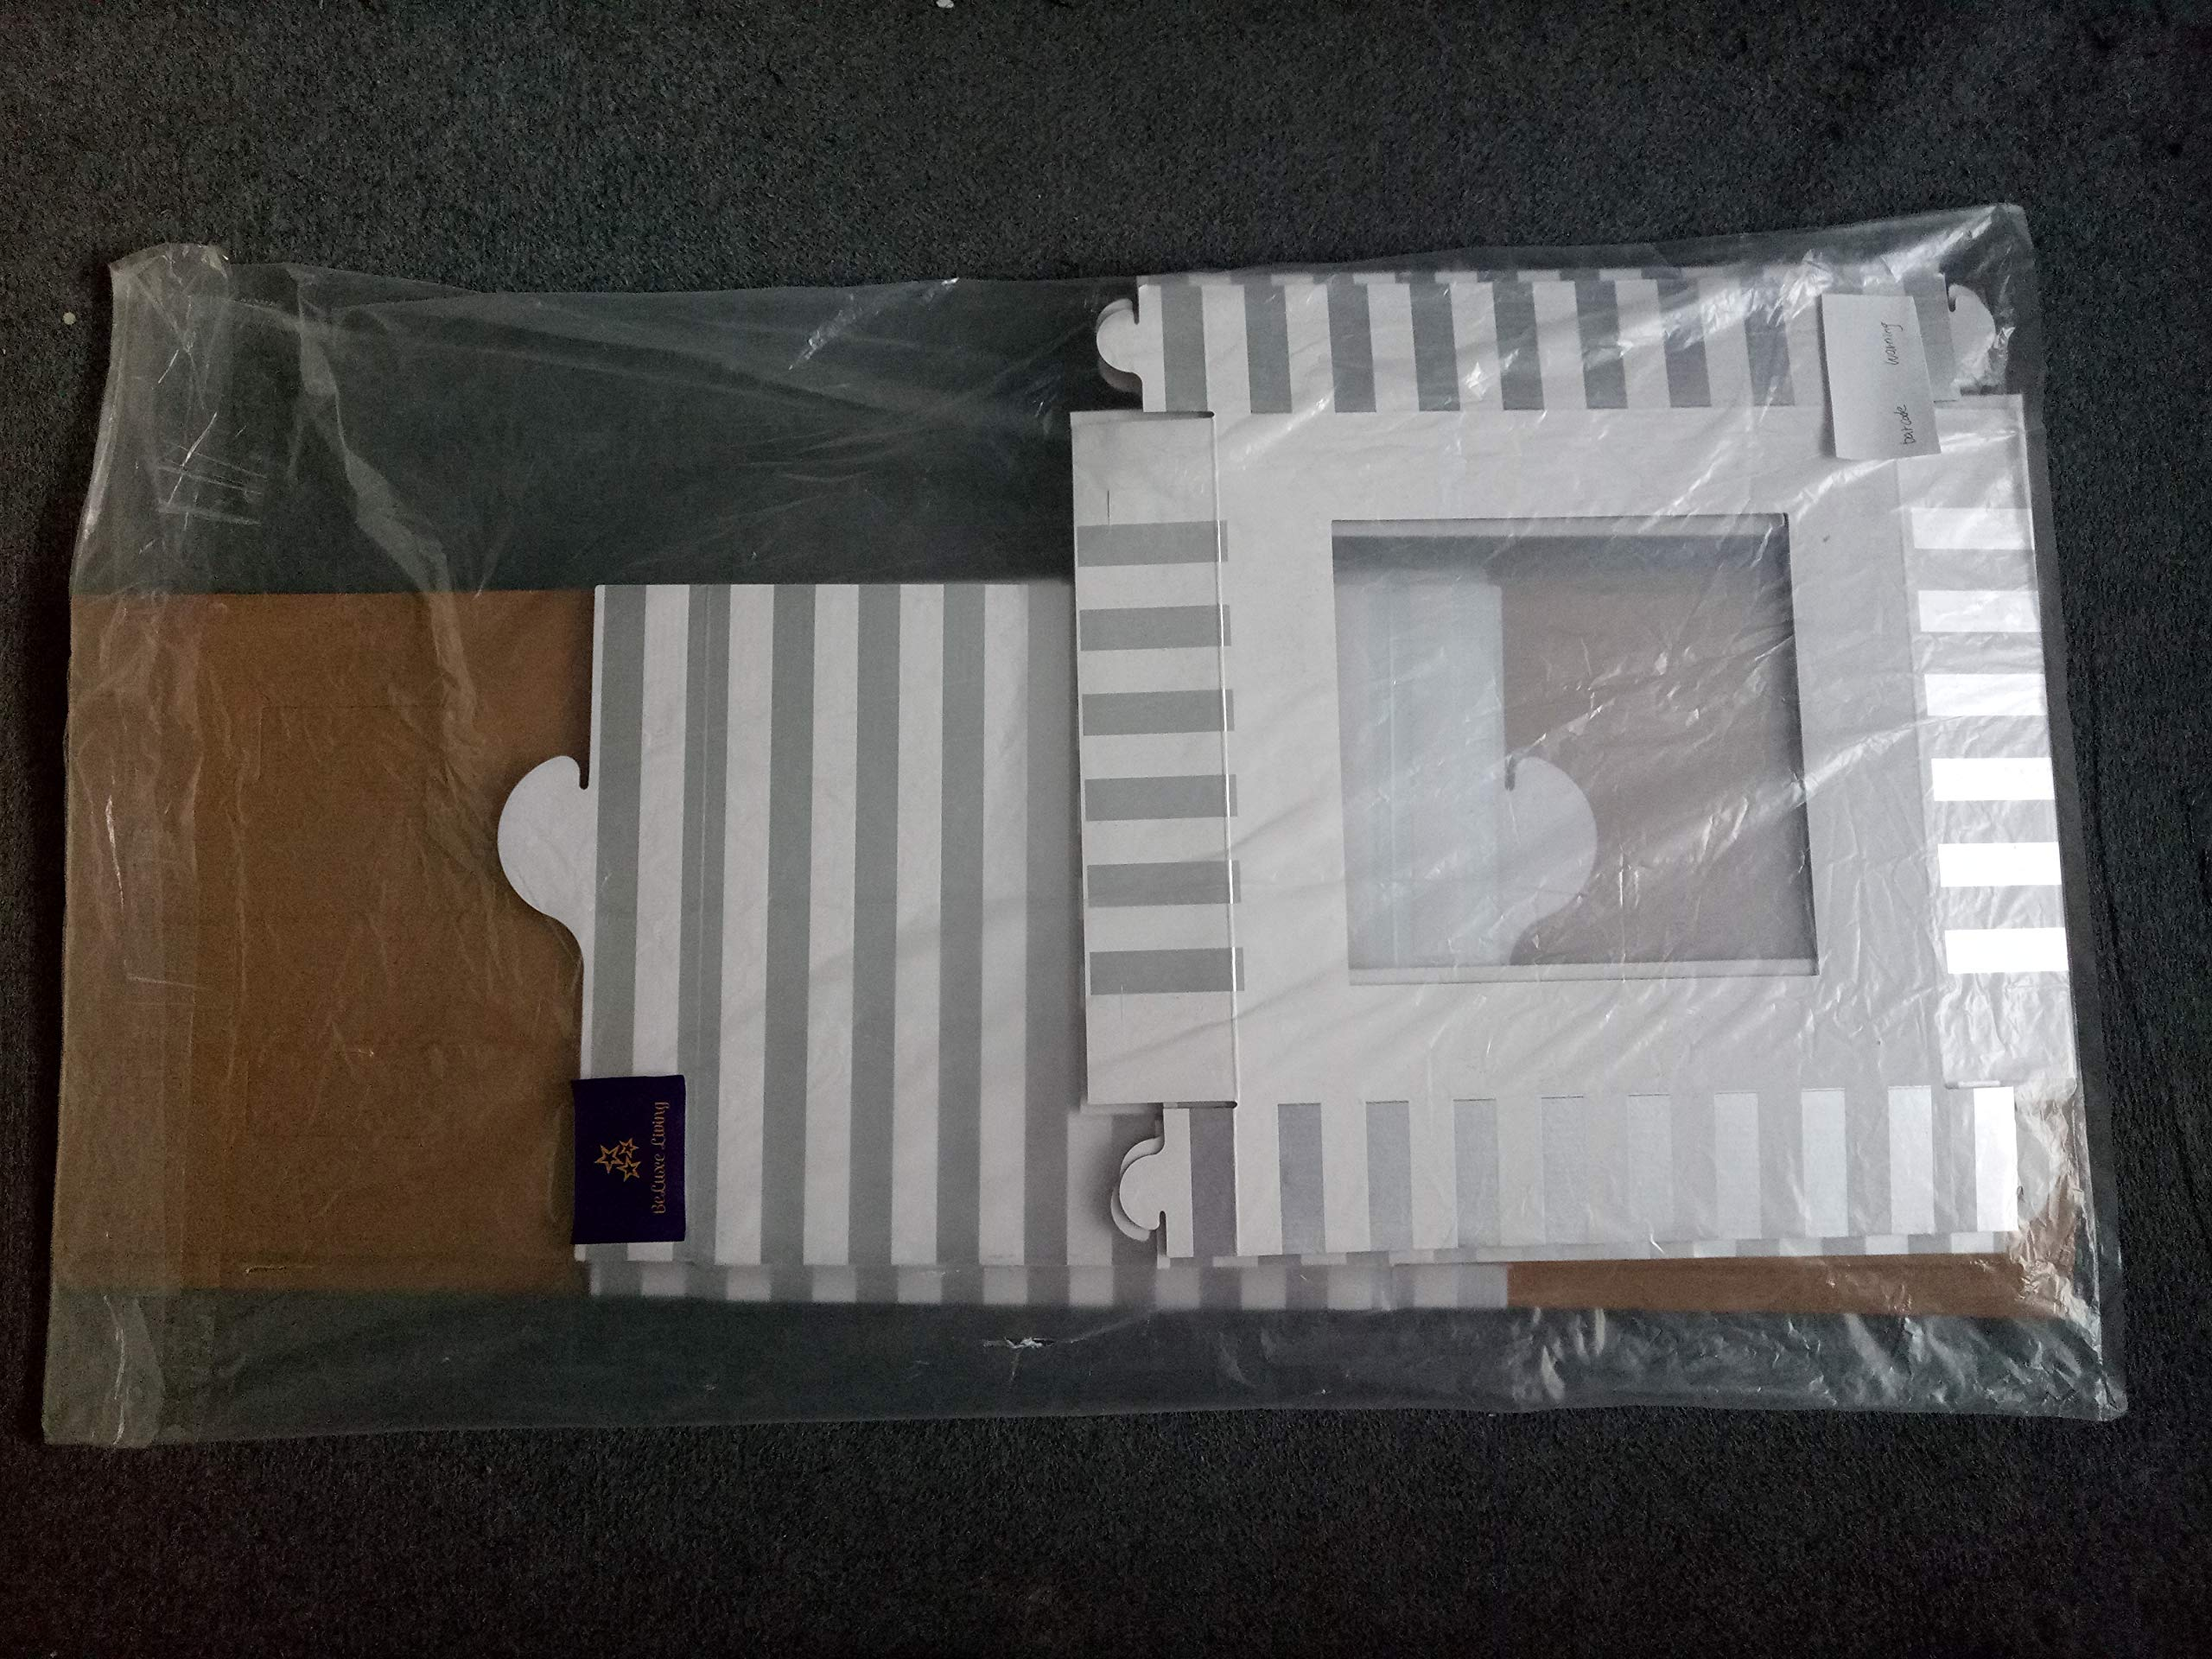 12x12x12 Tall Tiered Double Layer Carry Cake Box for Transport-3 pack (3, 12x12x12) by BeLuxe (Image #4)